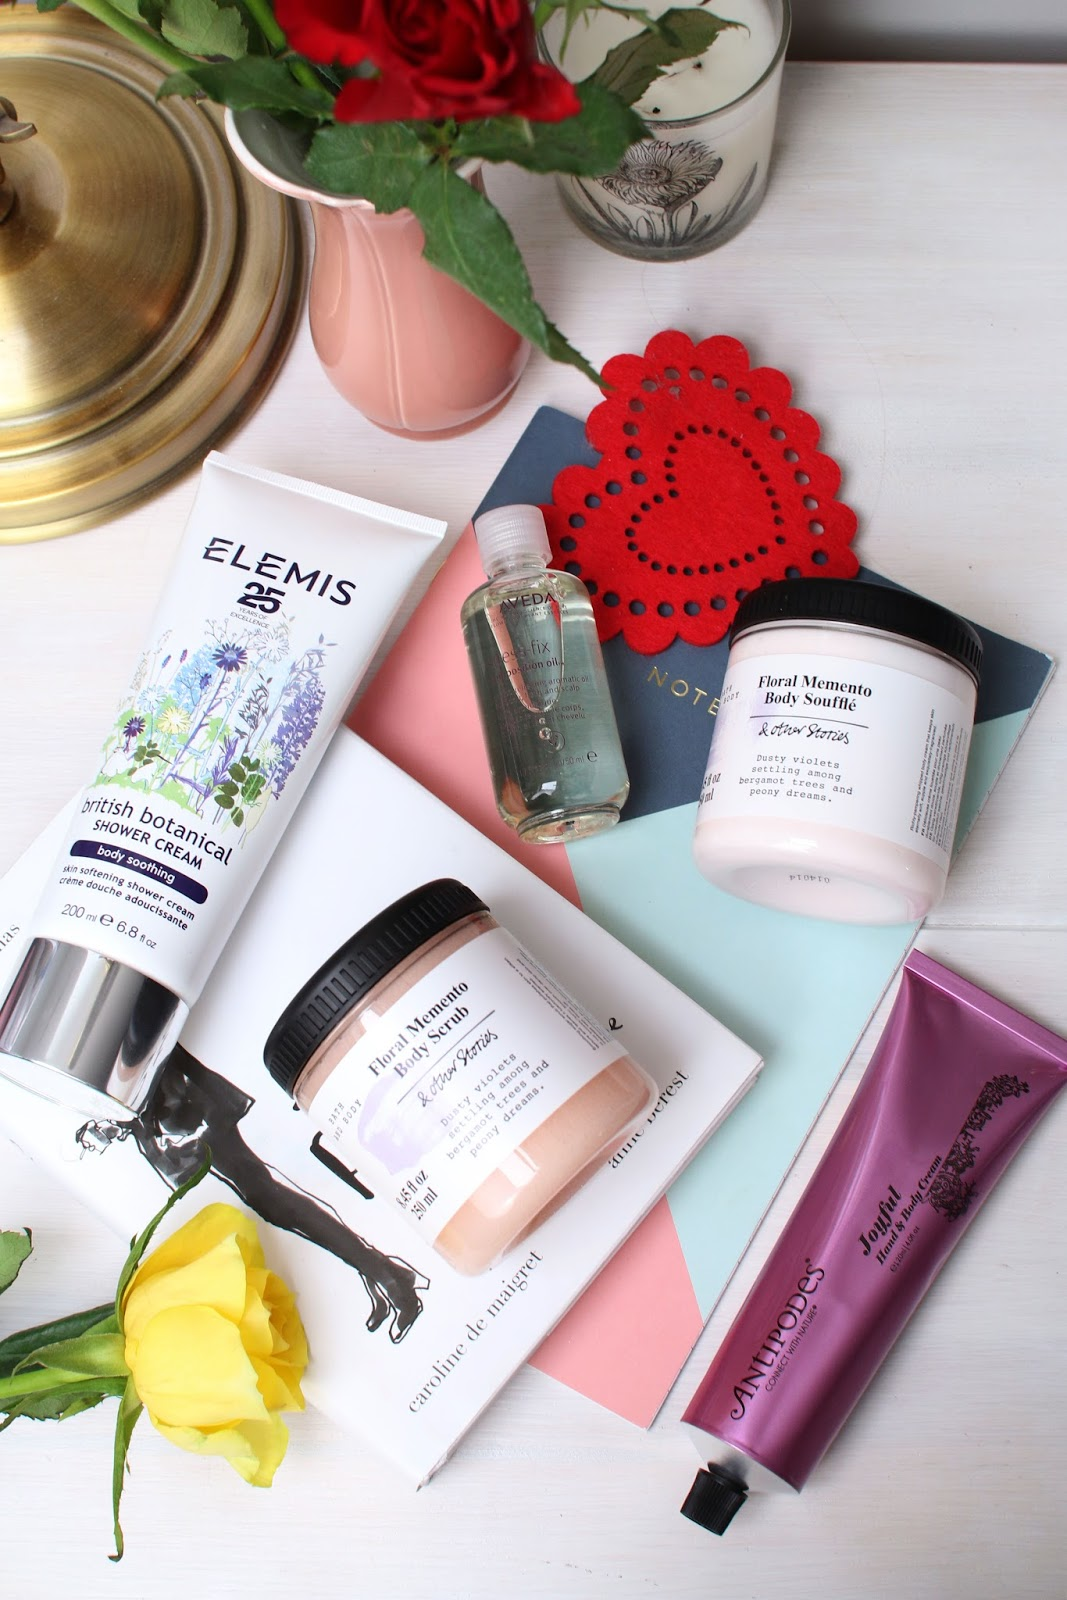 Much Needed Body TLC with Antipodes Joyful Hand Cream, & Other Stories Floral Memento Body Scrub, Floral Memento Body Souffle, Elemis British Botanical Shower Cream and Aveda Stress Fix Oil